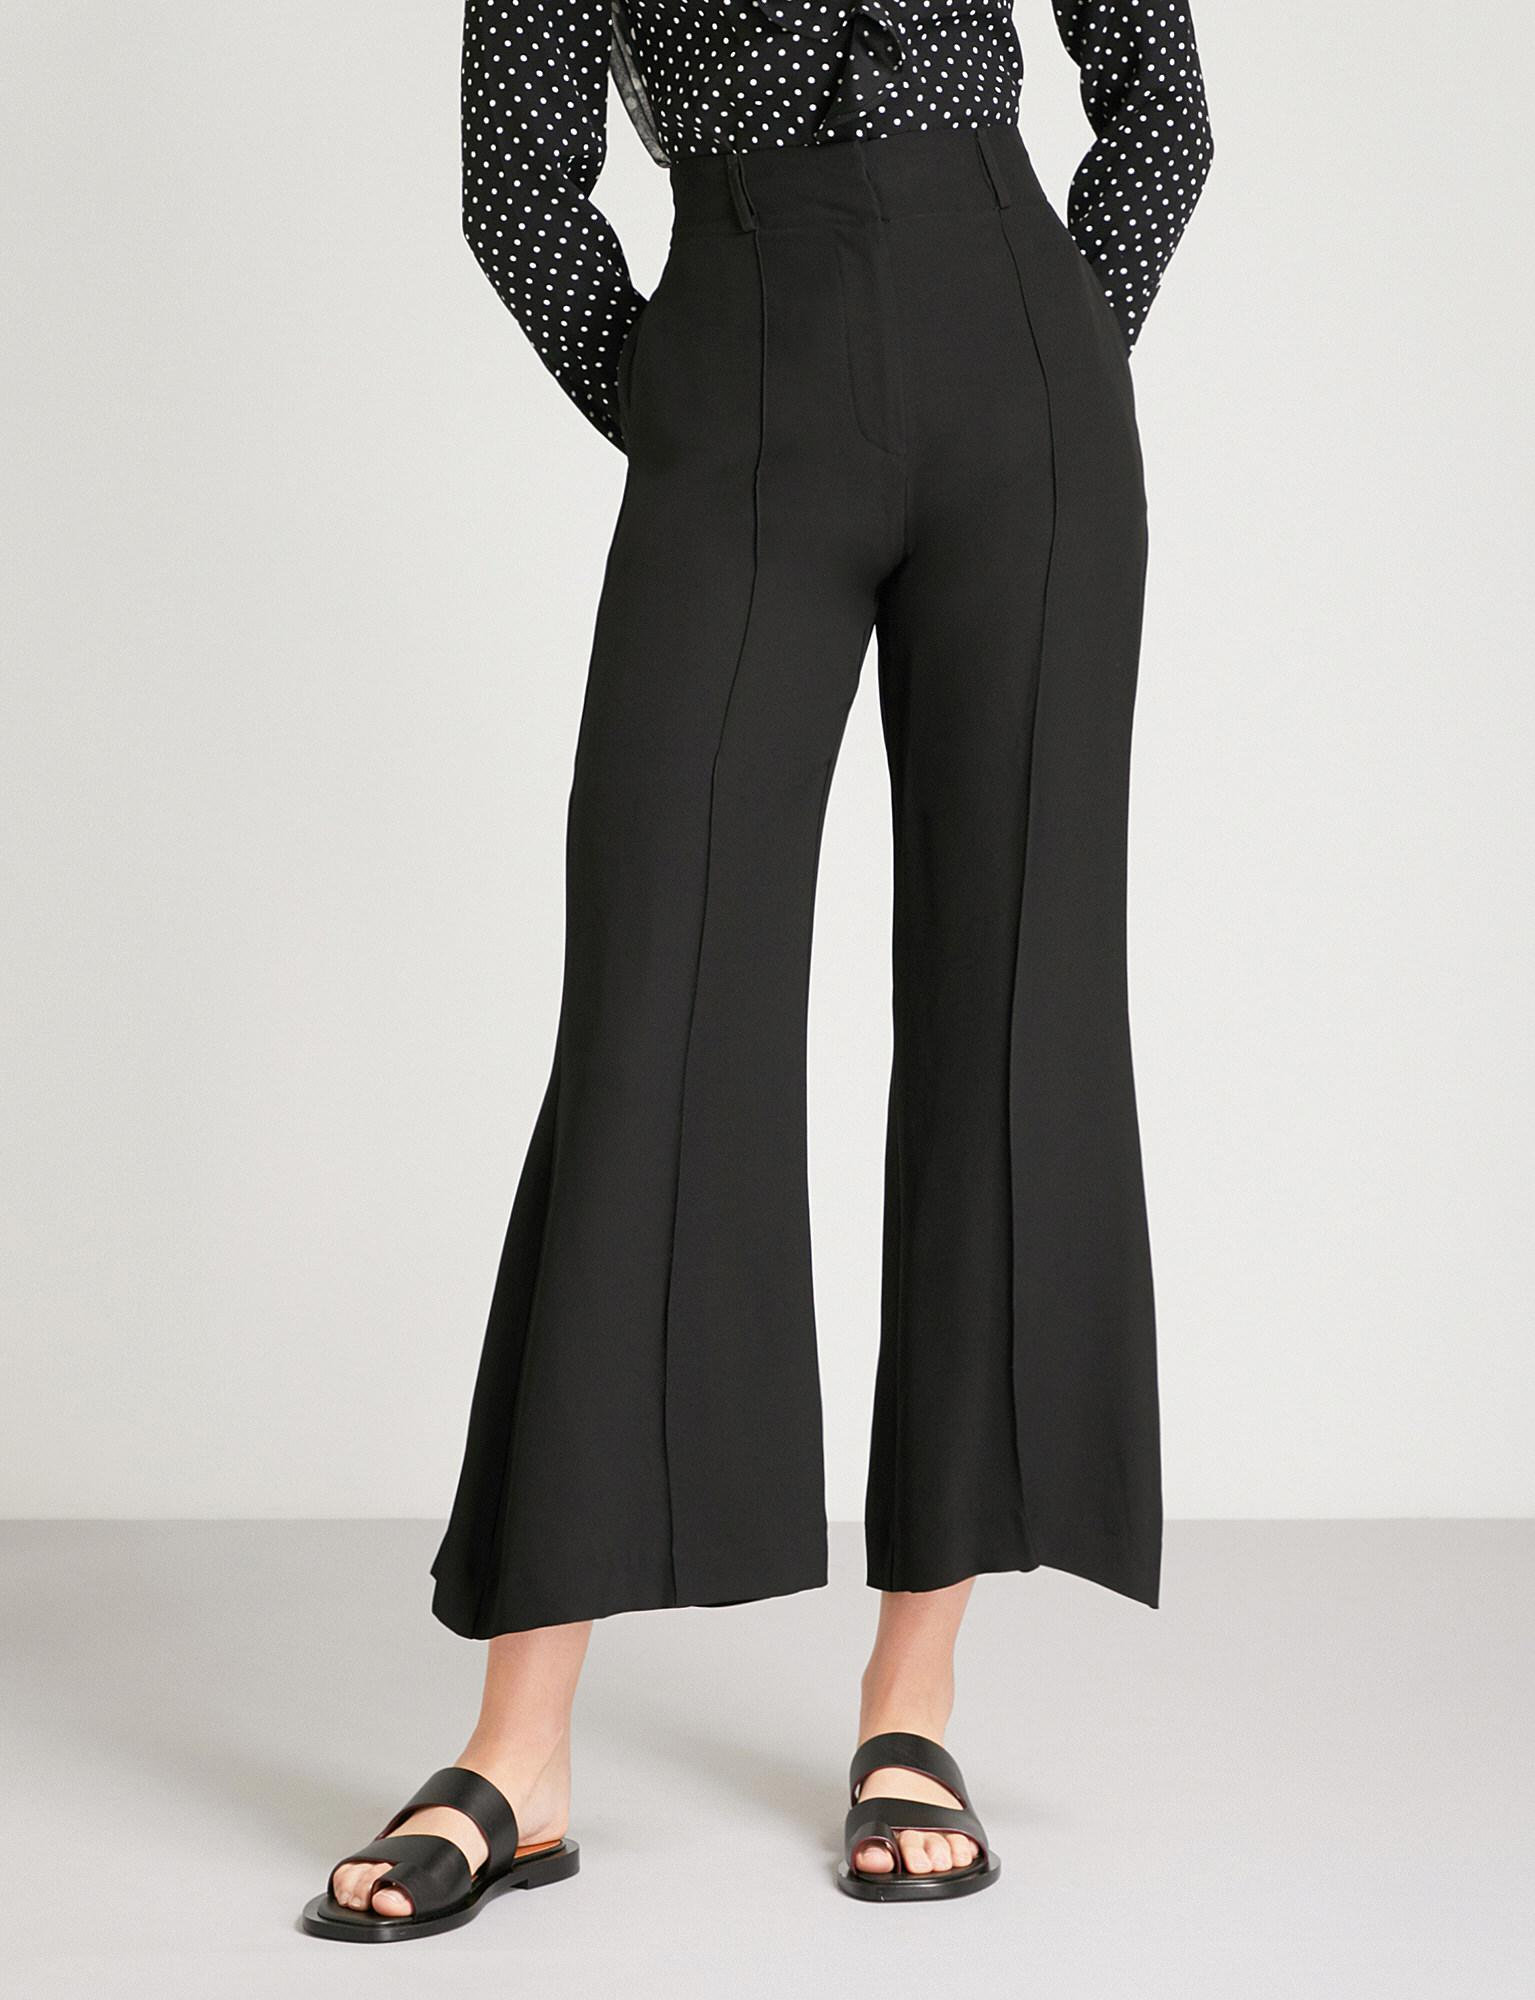 Sylvester Black Flared Trousers Finery Cheap From China Deals t3V3TOS